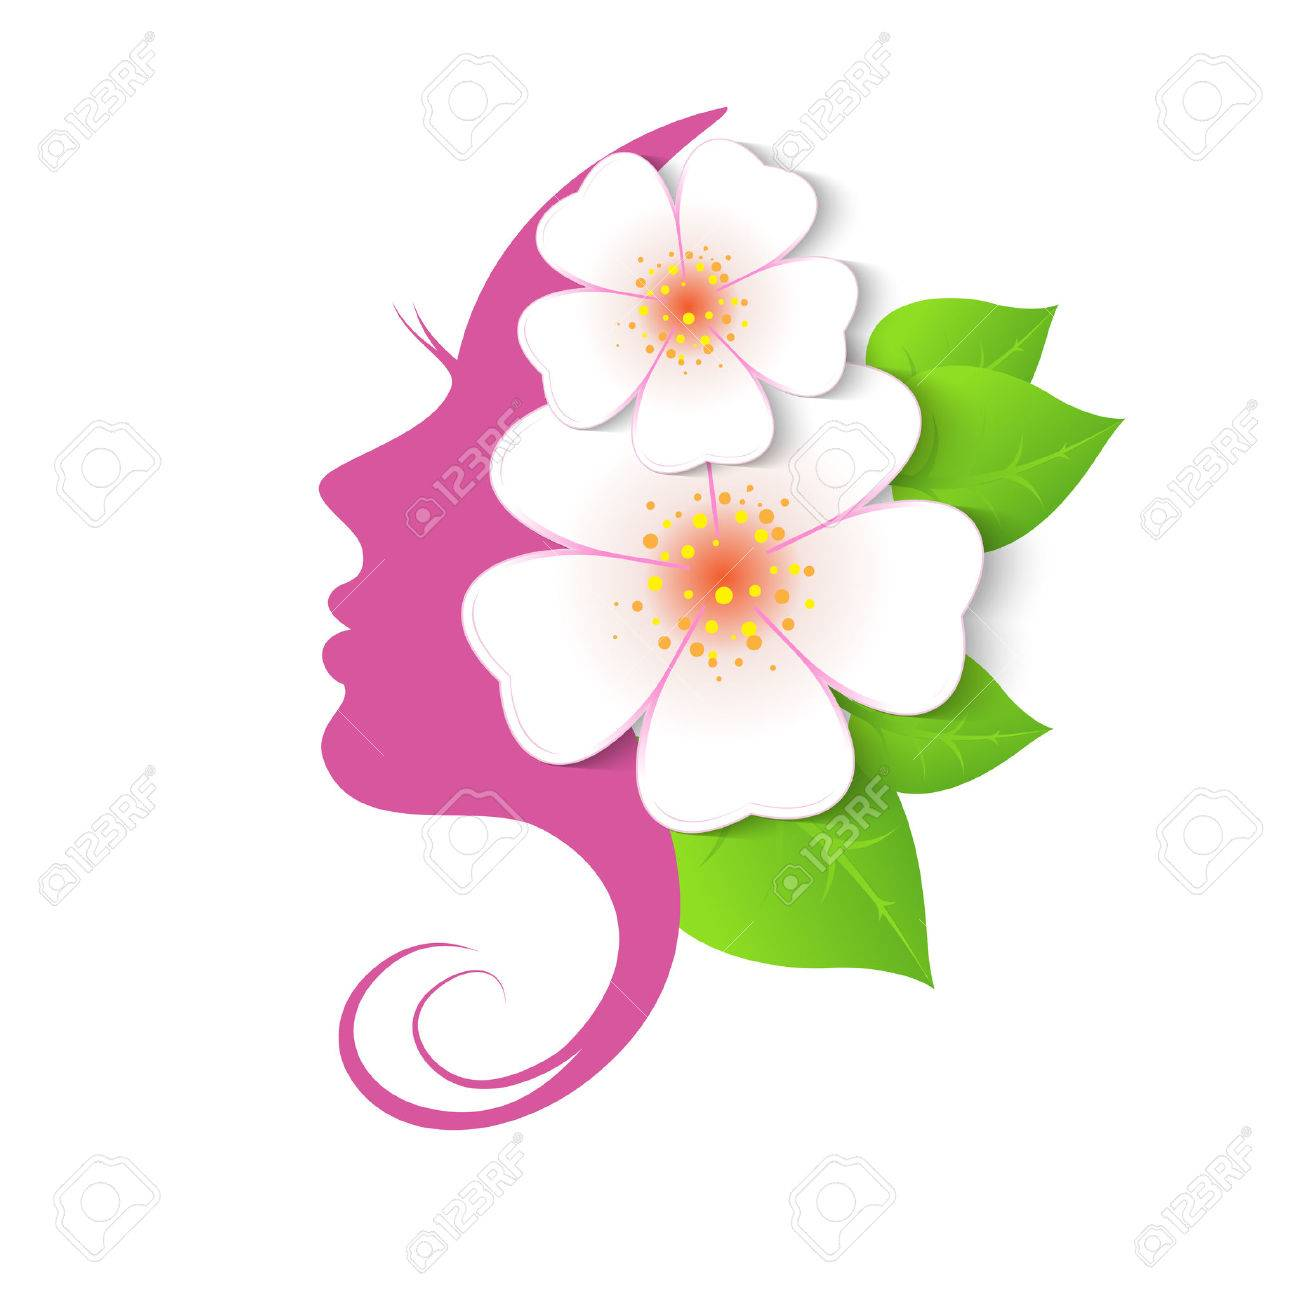 Female face in circle shape. Woman with flowers in hair. Vector beauty floral logo, sign, label design elements. Trendy concept for beauty salon, massage, spa, natural cosmetics. - 58060865